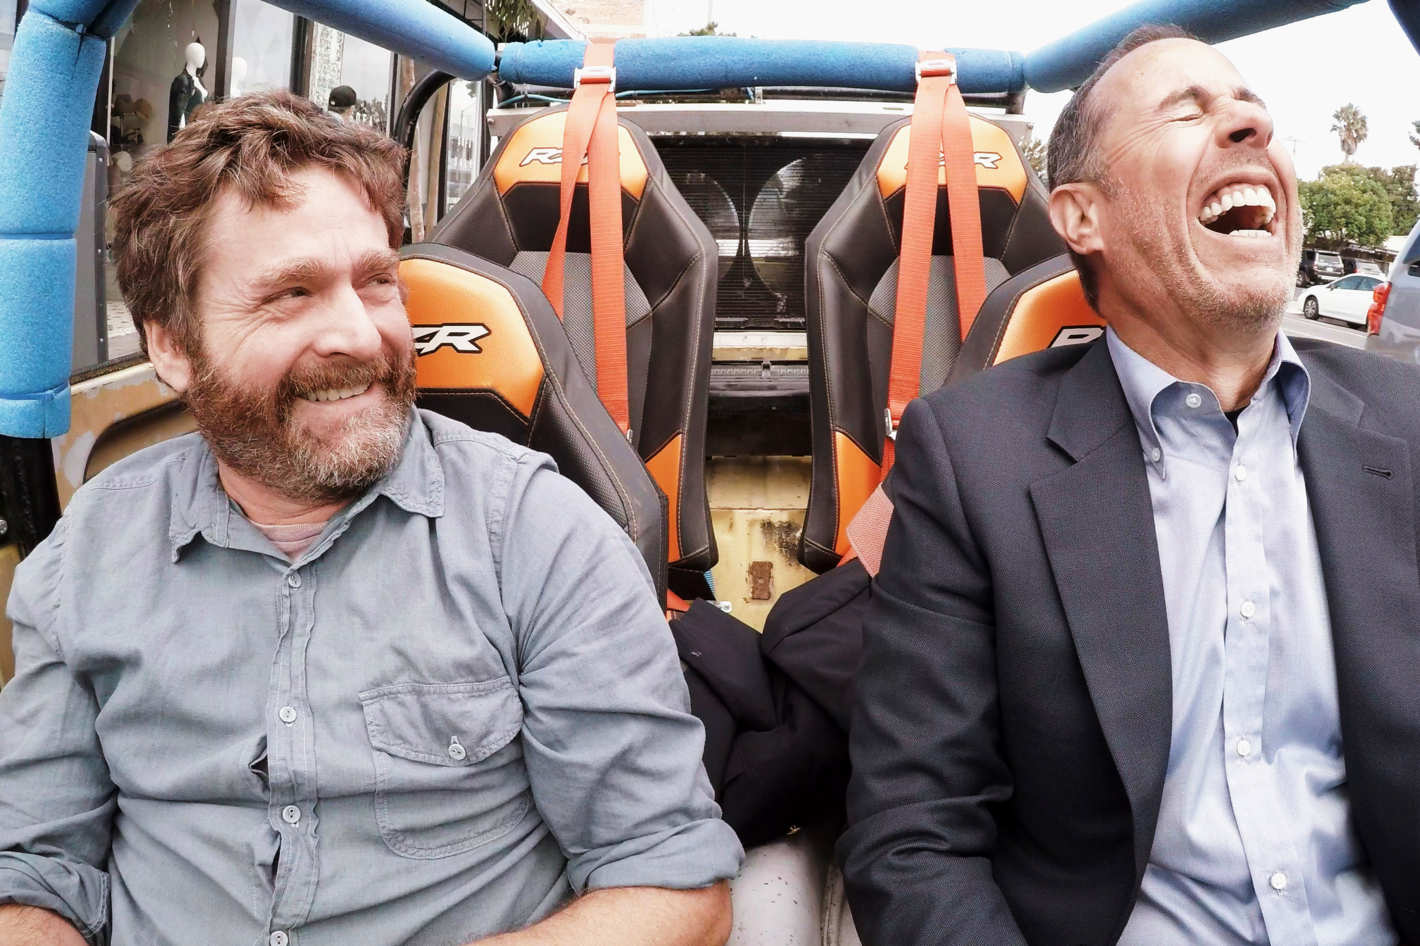 The Best Quotes From Comedians In Cars Season 10